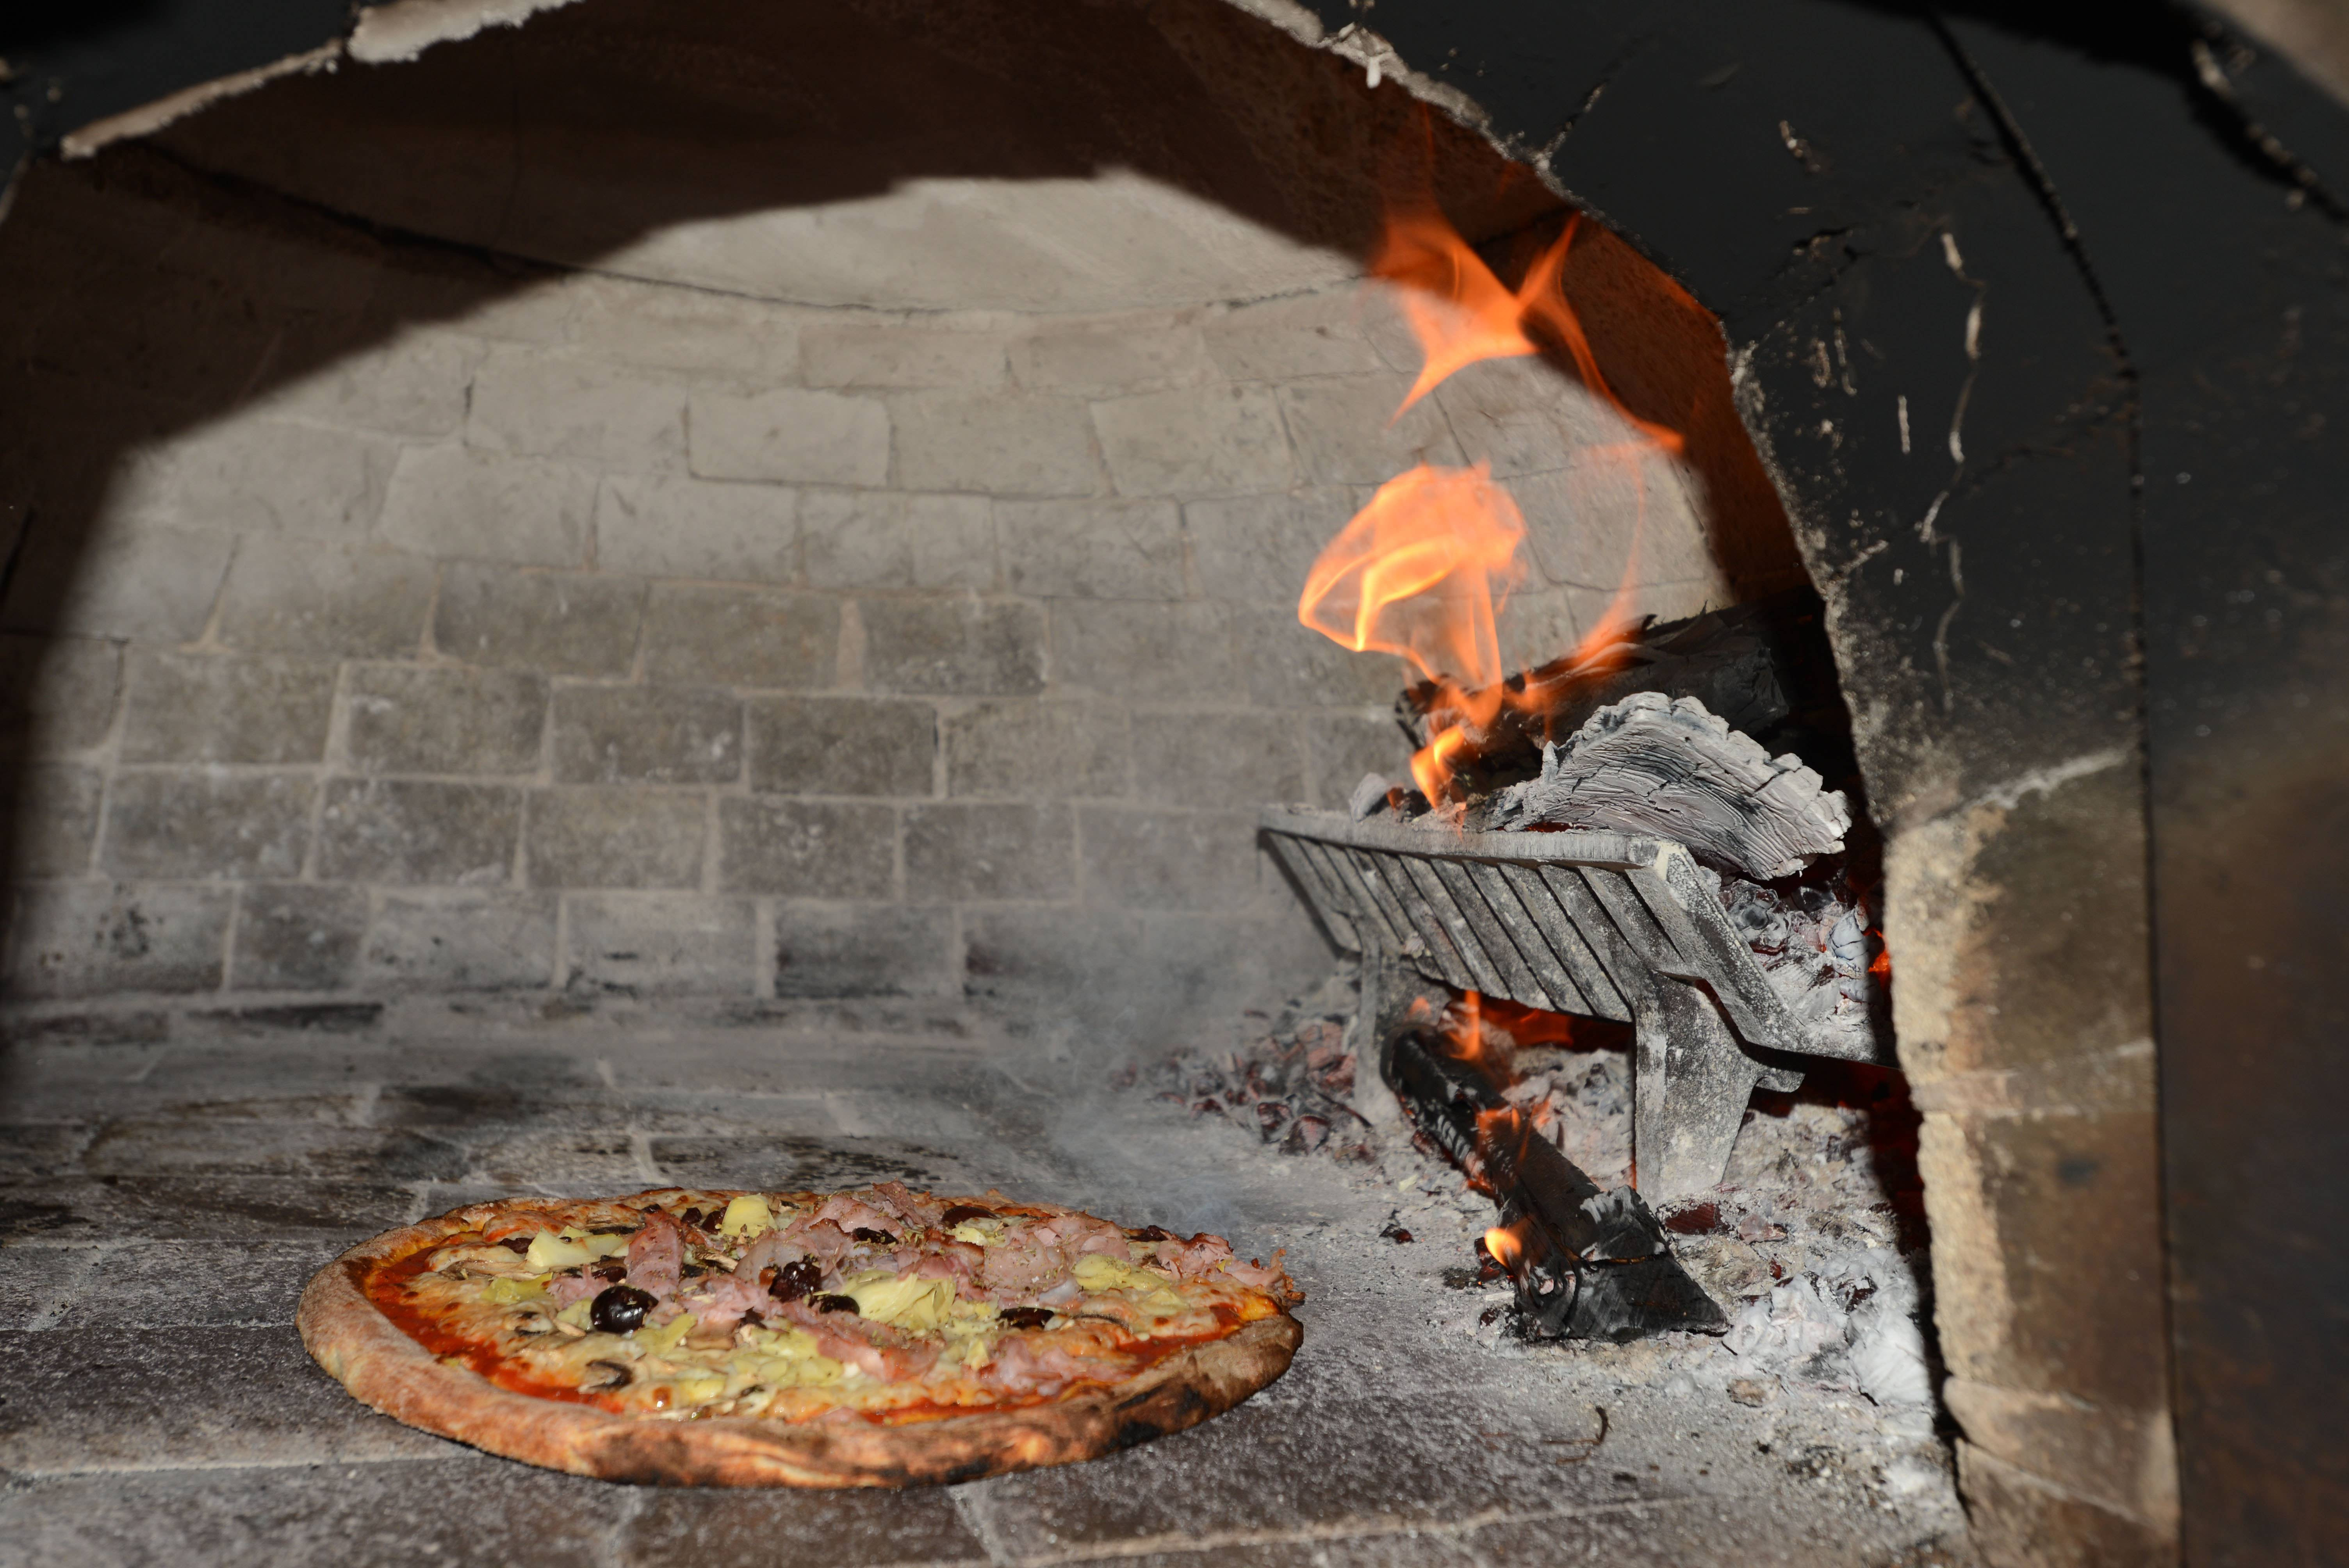 Capricciosa pizza cooks in the wood-burning oven at Elio's Pizza on Fire.